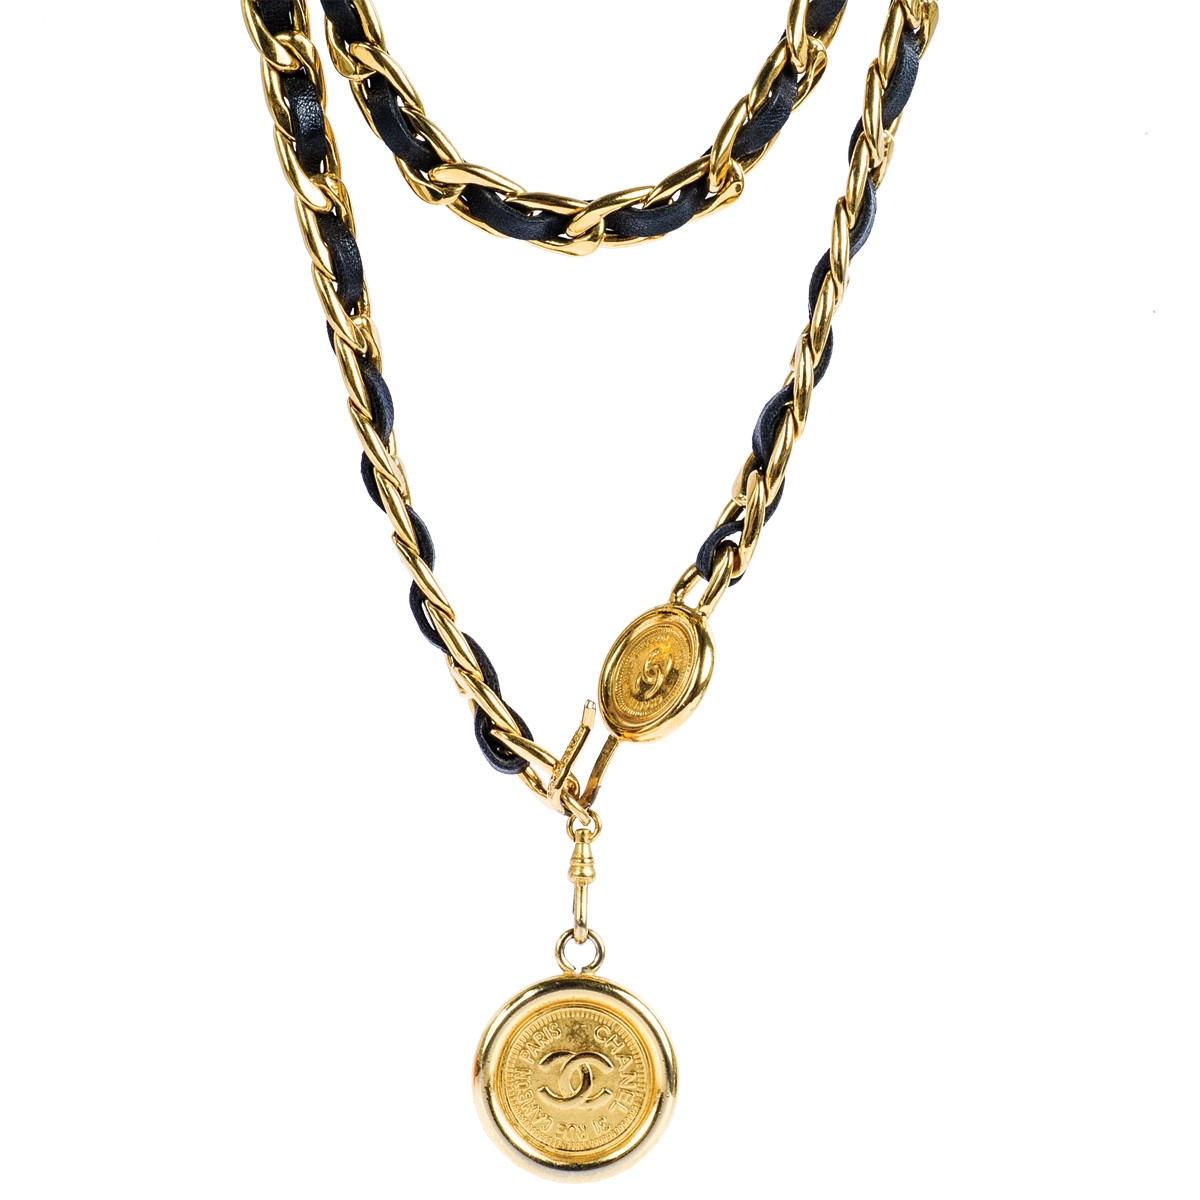 Vintage Chanel Leather Chain